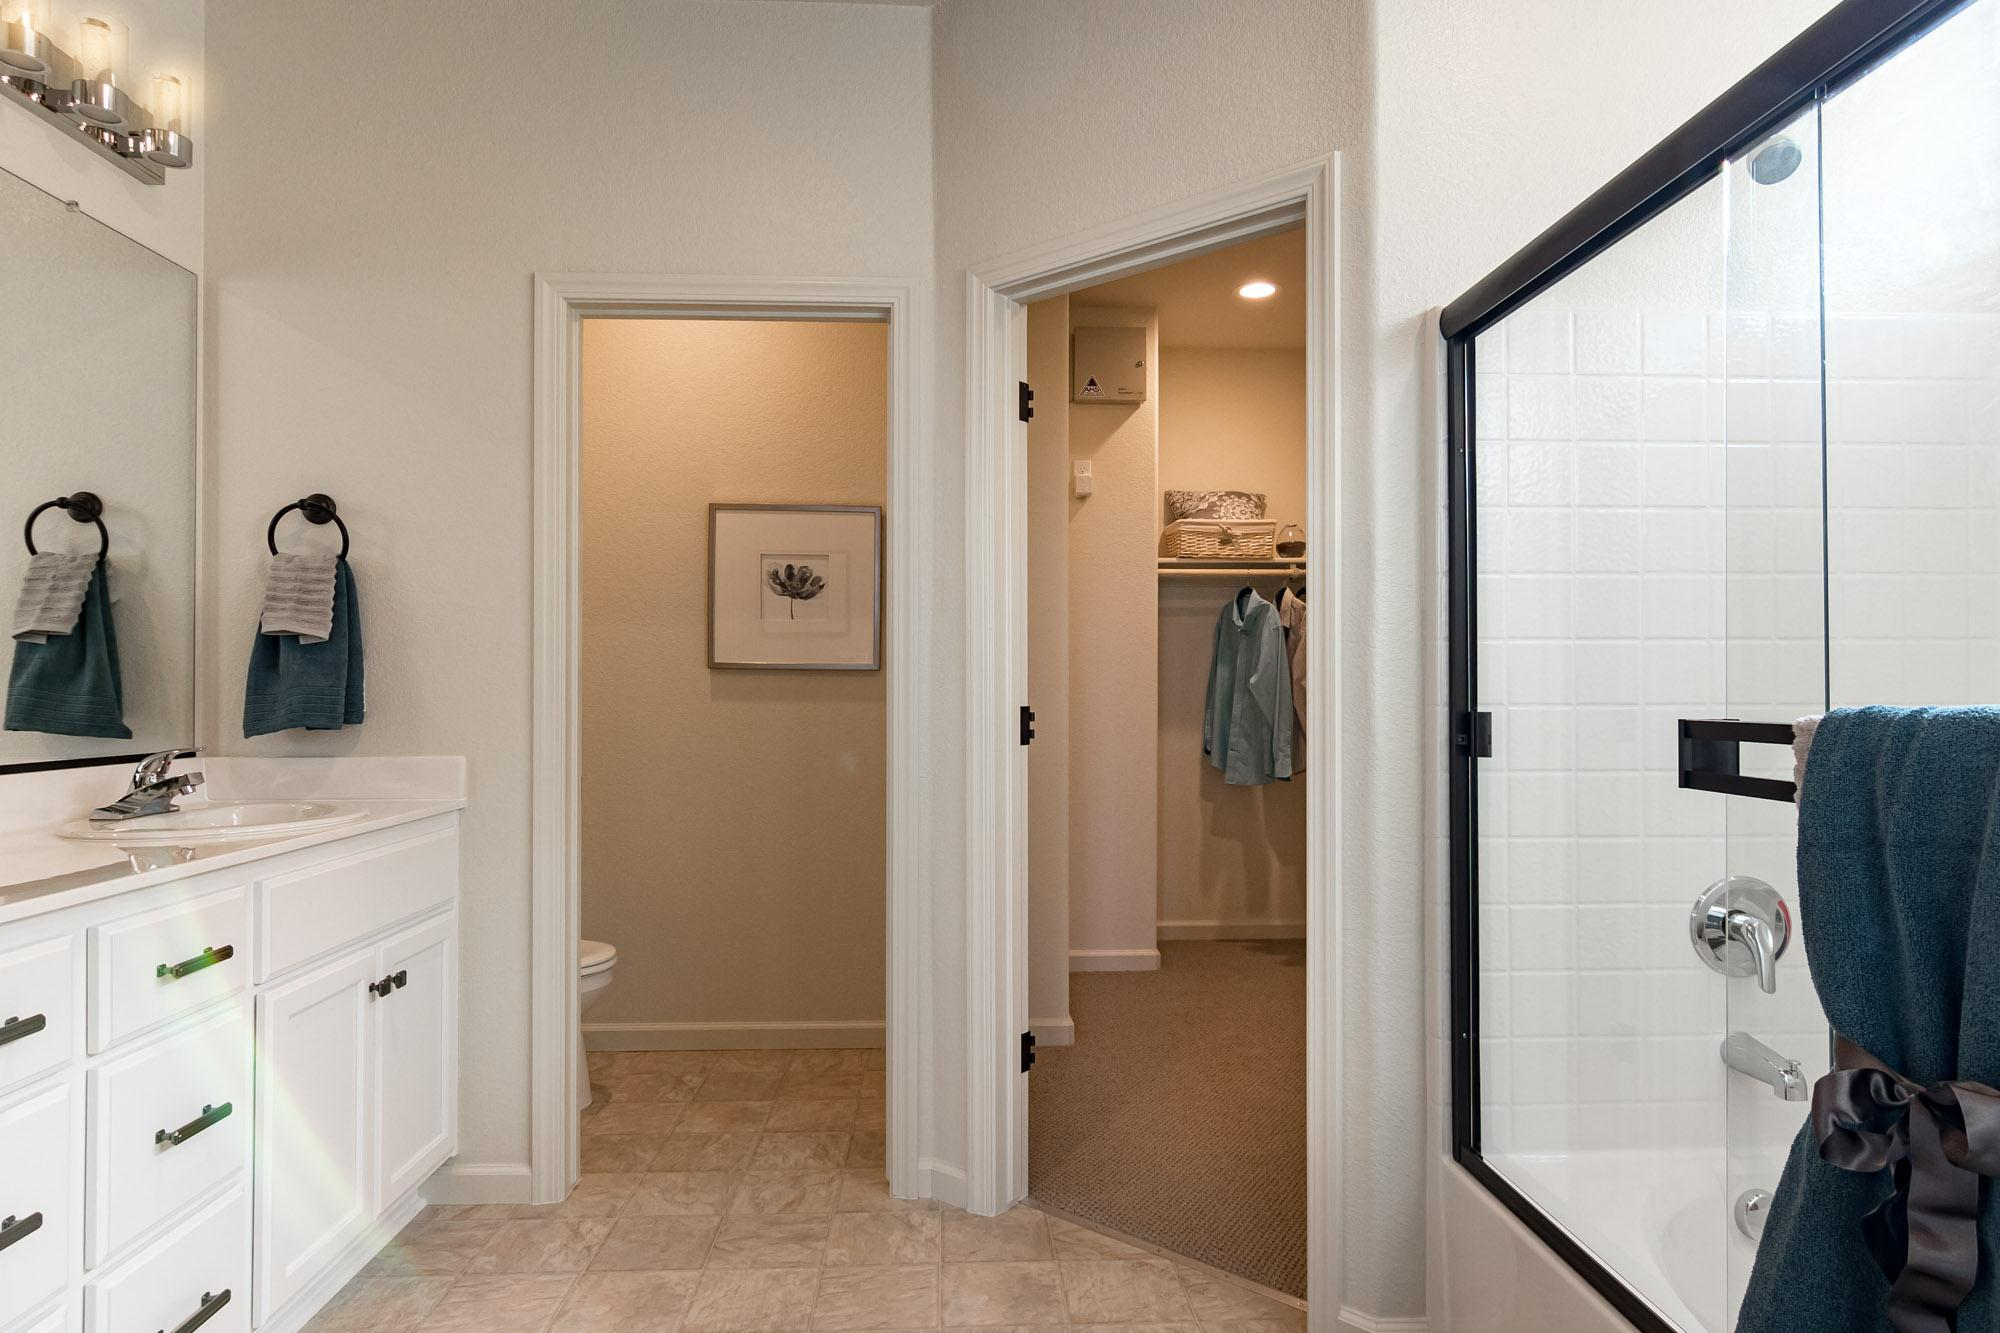 Bathroom featured in the Heartwood By Windward Pacific Builders in Merced, CA